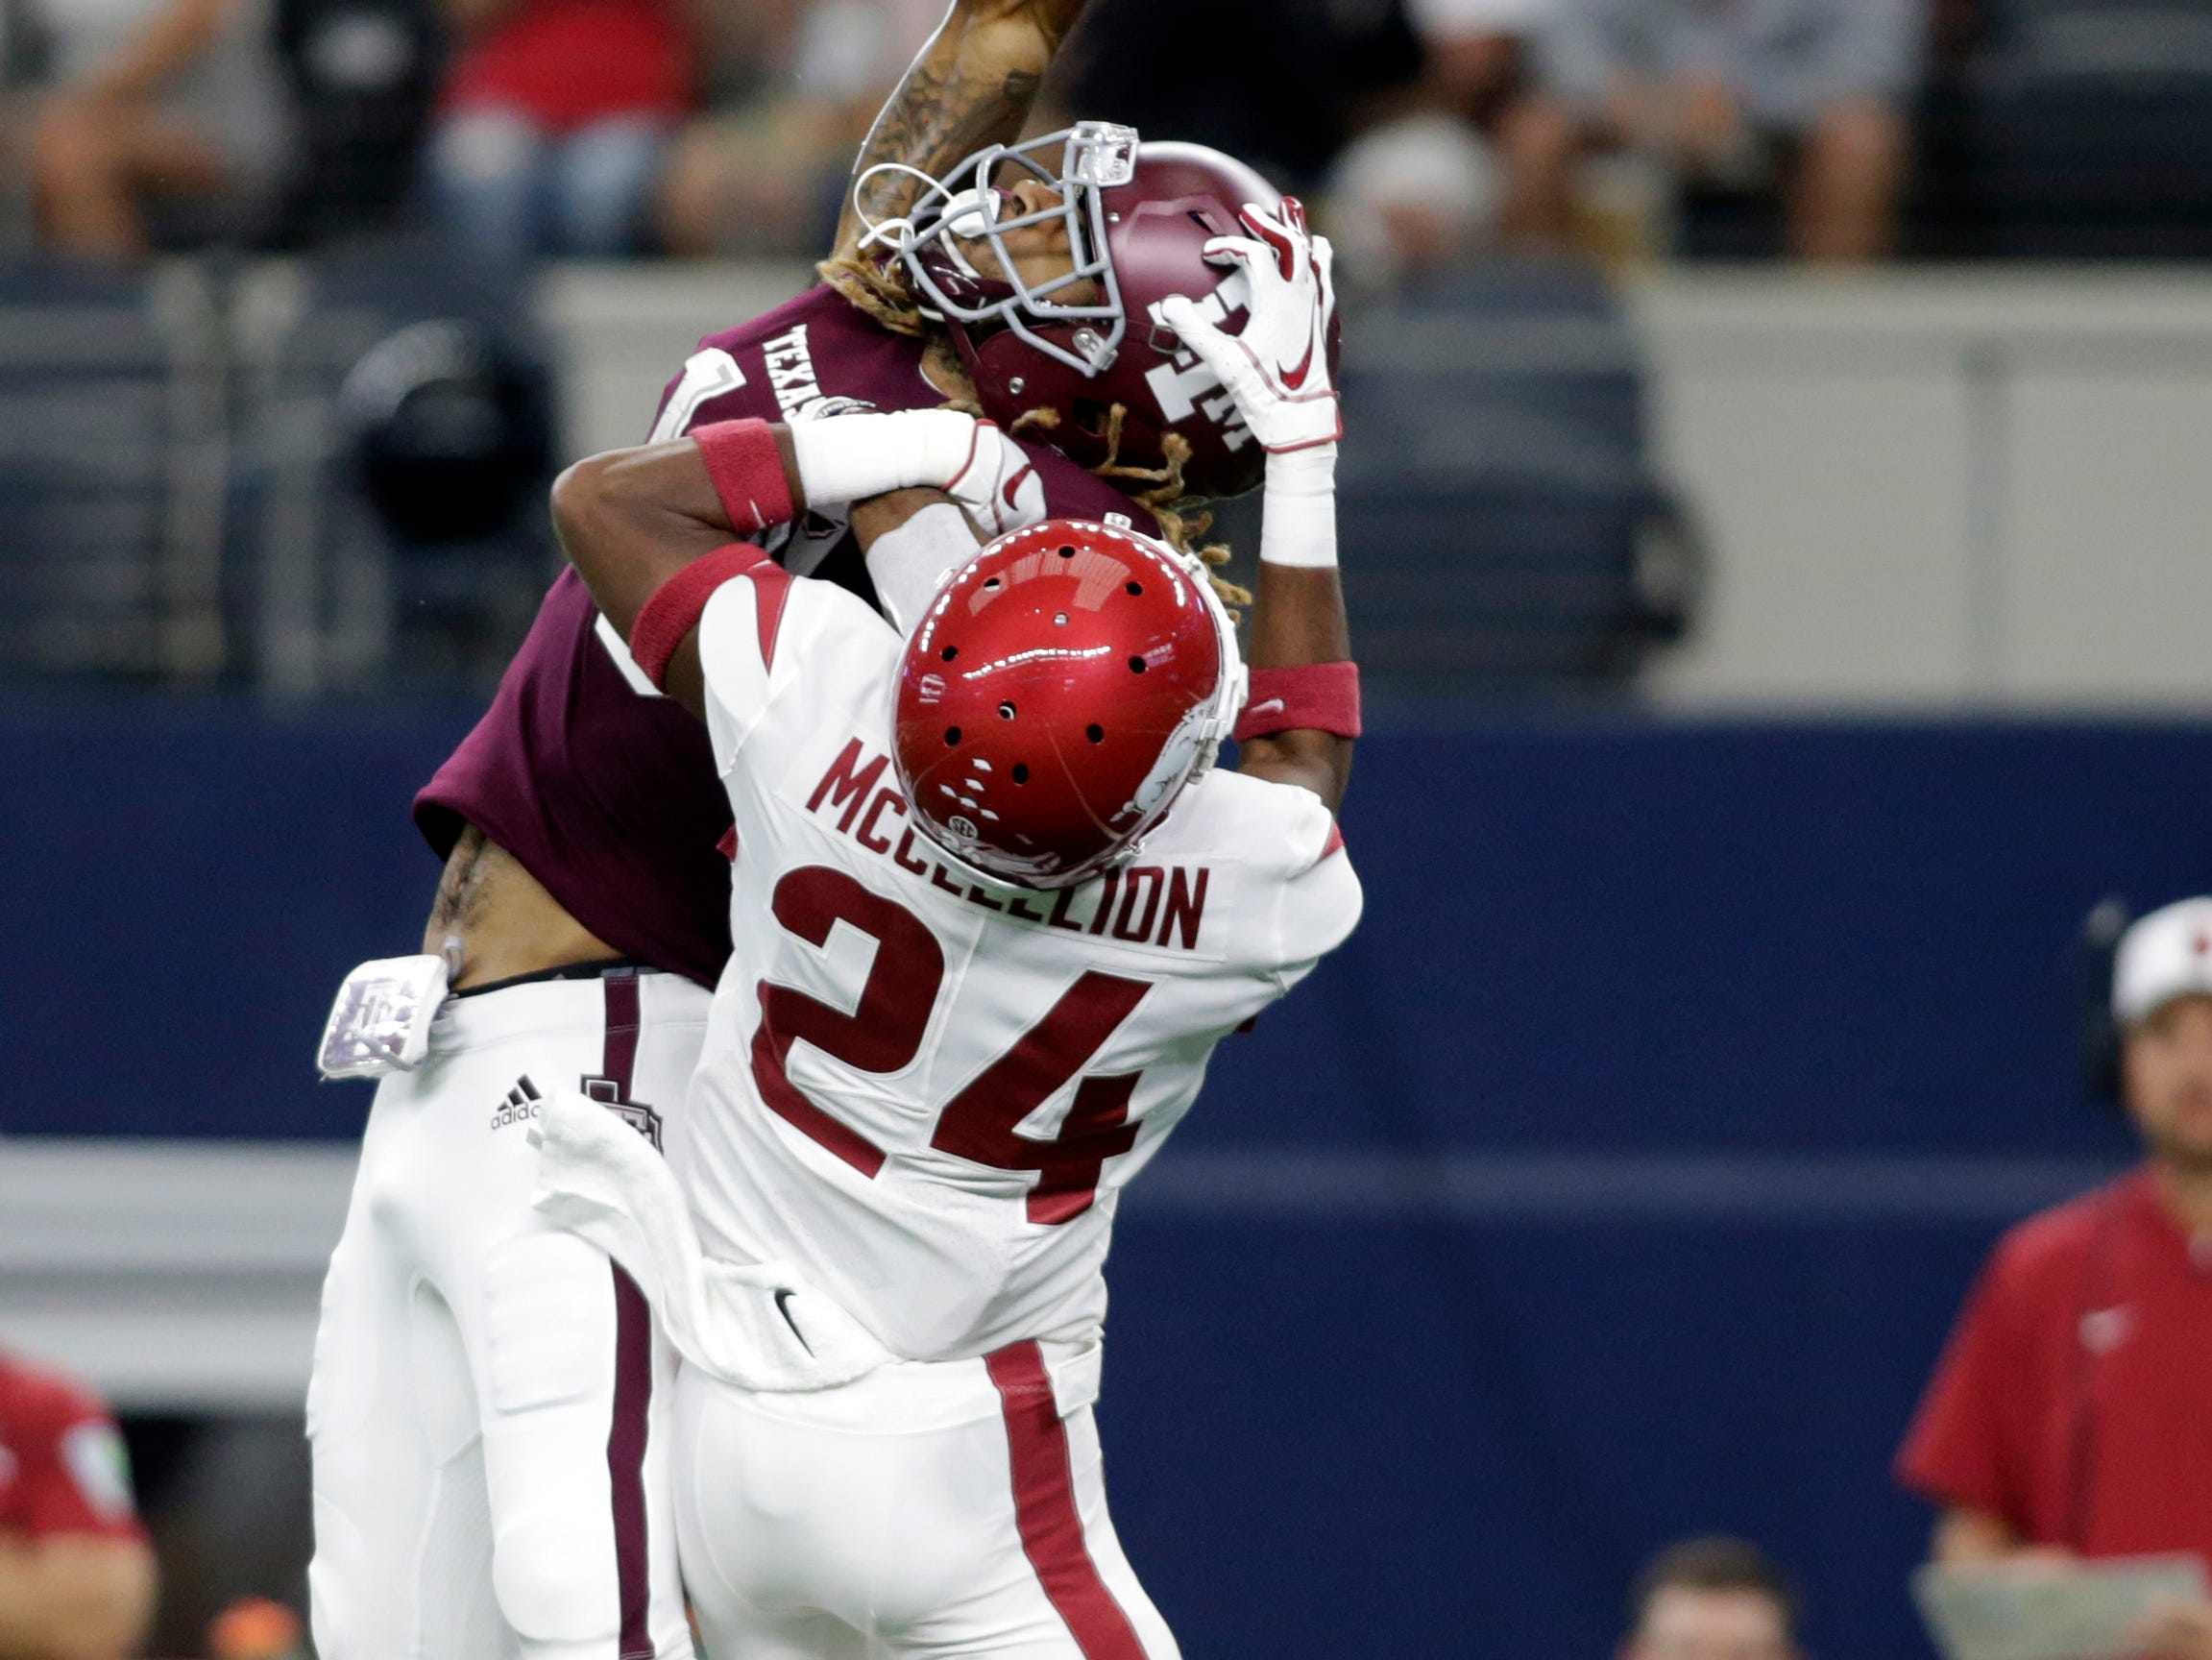 Arkansas Razorbacks defensive back Jarques McClellion (24) is called for pass interference against Texas A&M Aggies wide receiver Kendrick Rogers (13) in the first quarter at AT&T Stadium.